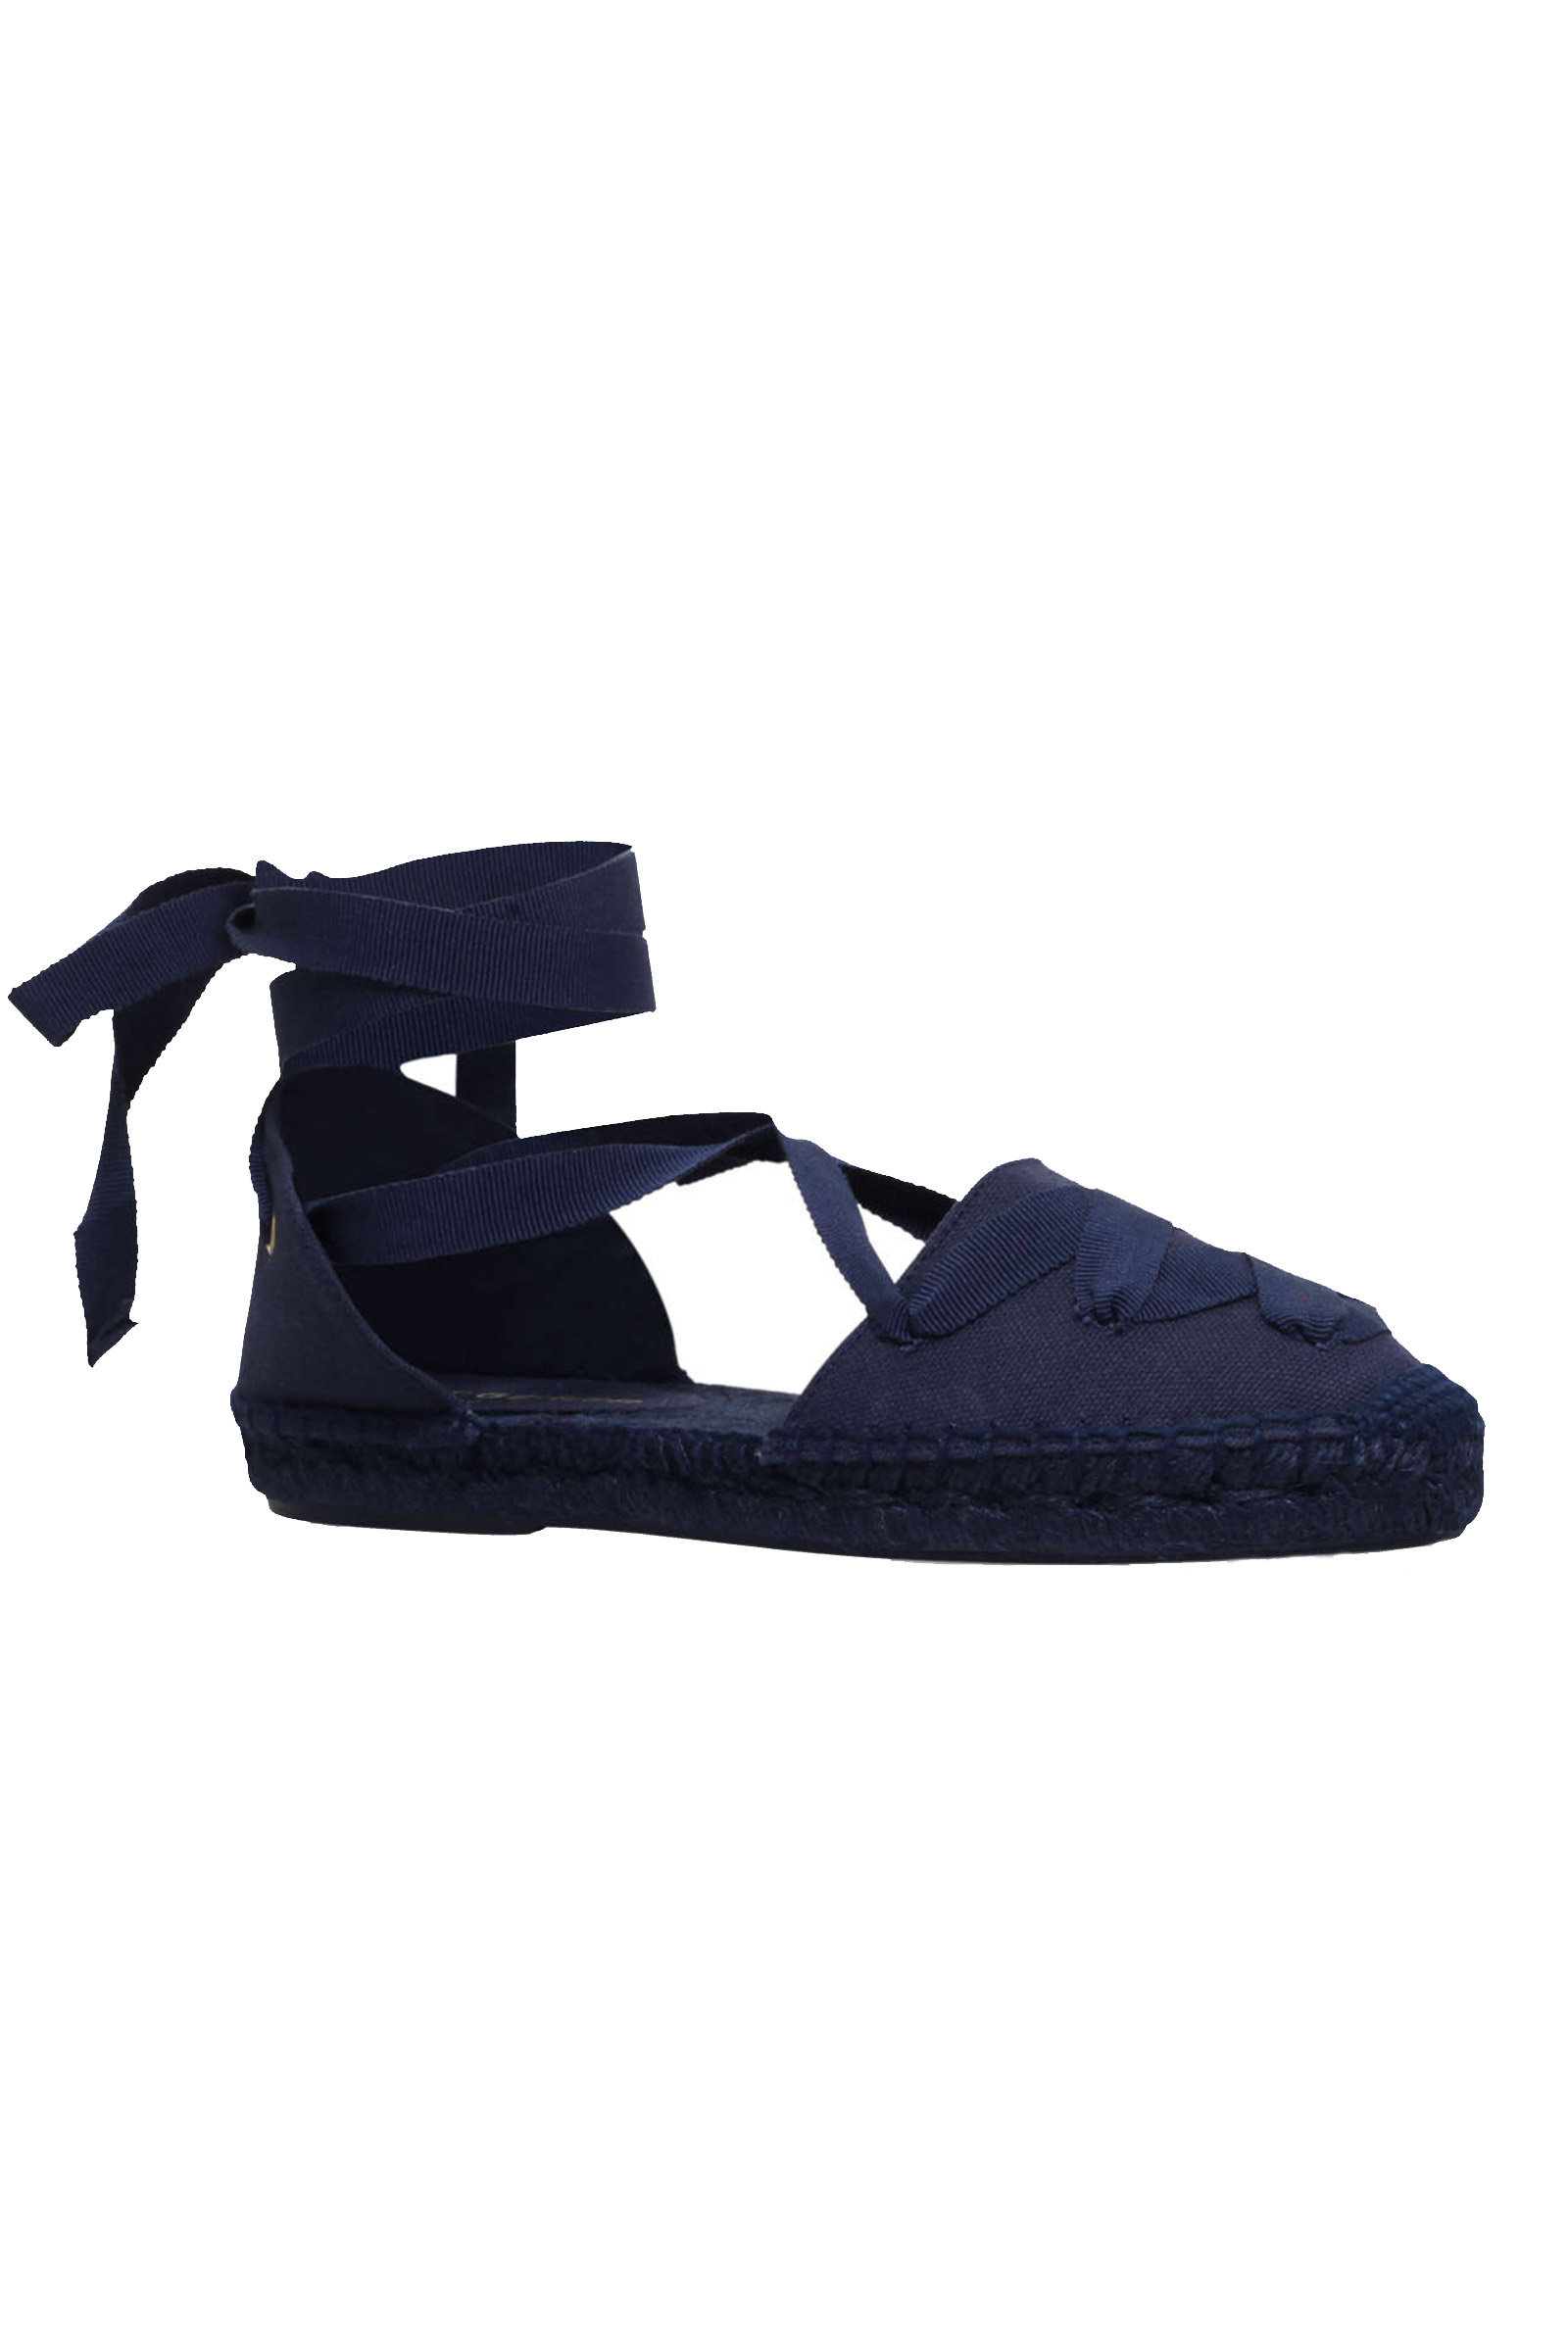 Click to Buy Kurt Geiger Margo Navy Espadrilles